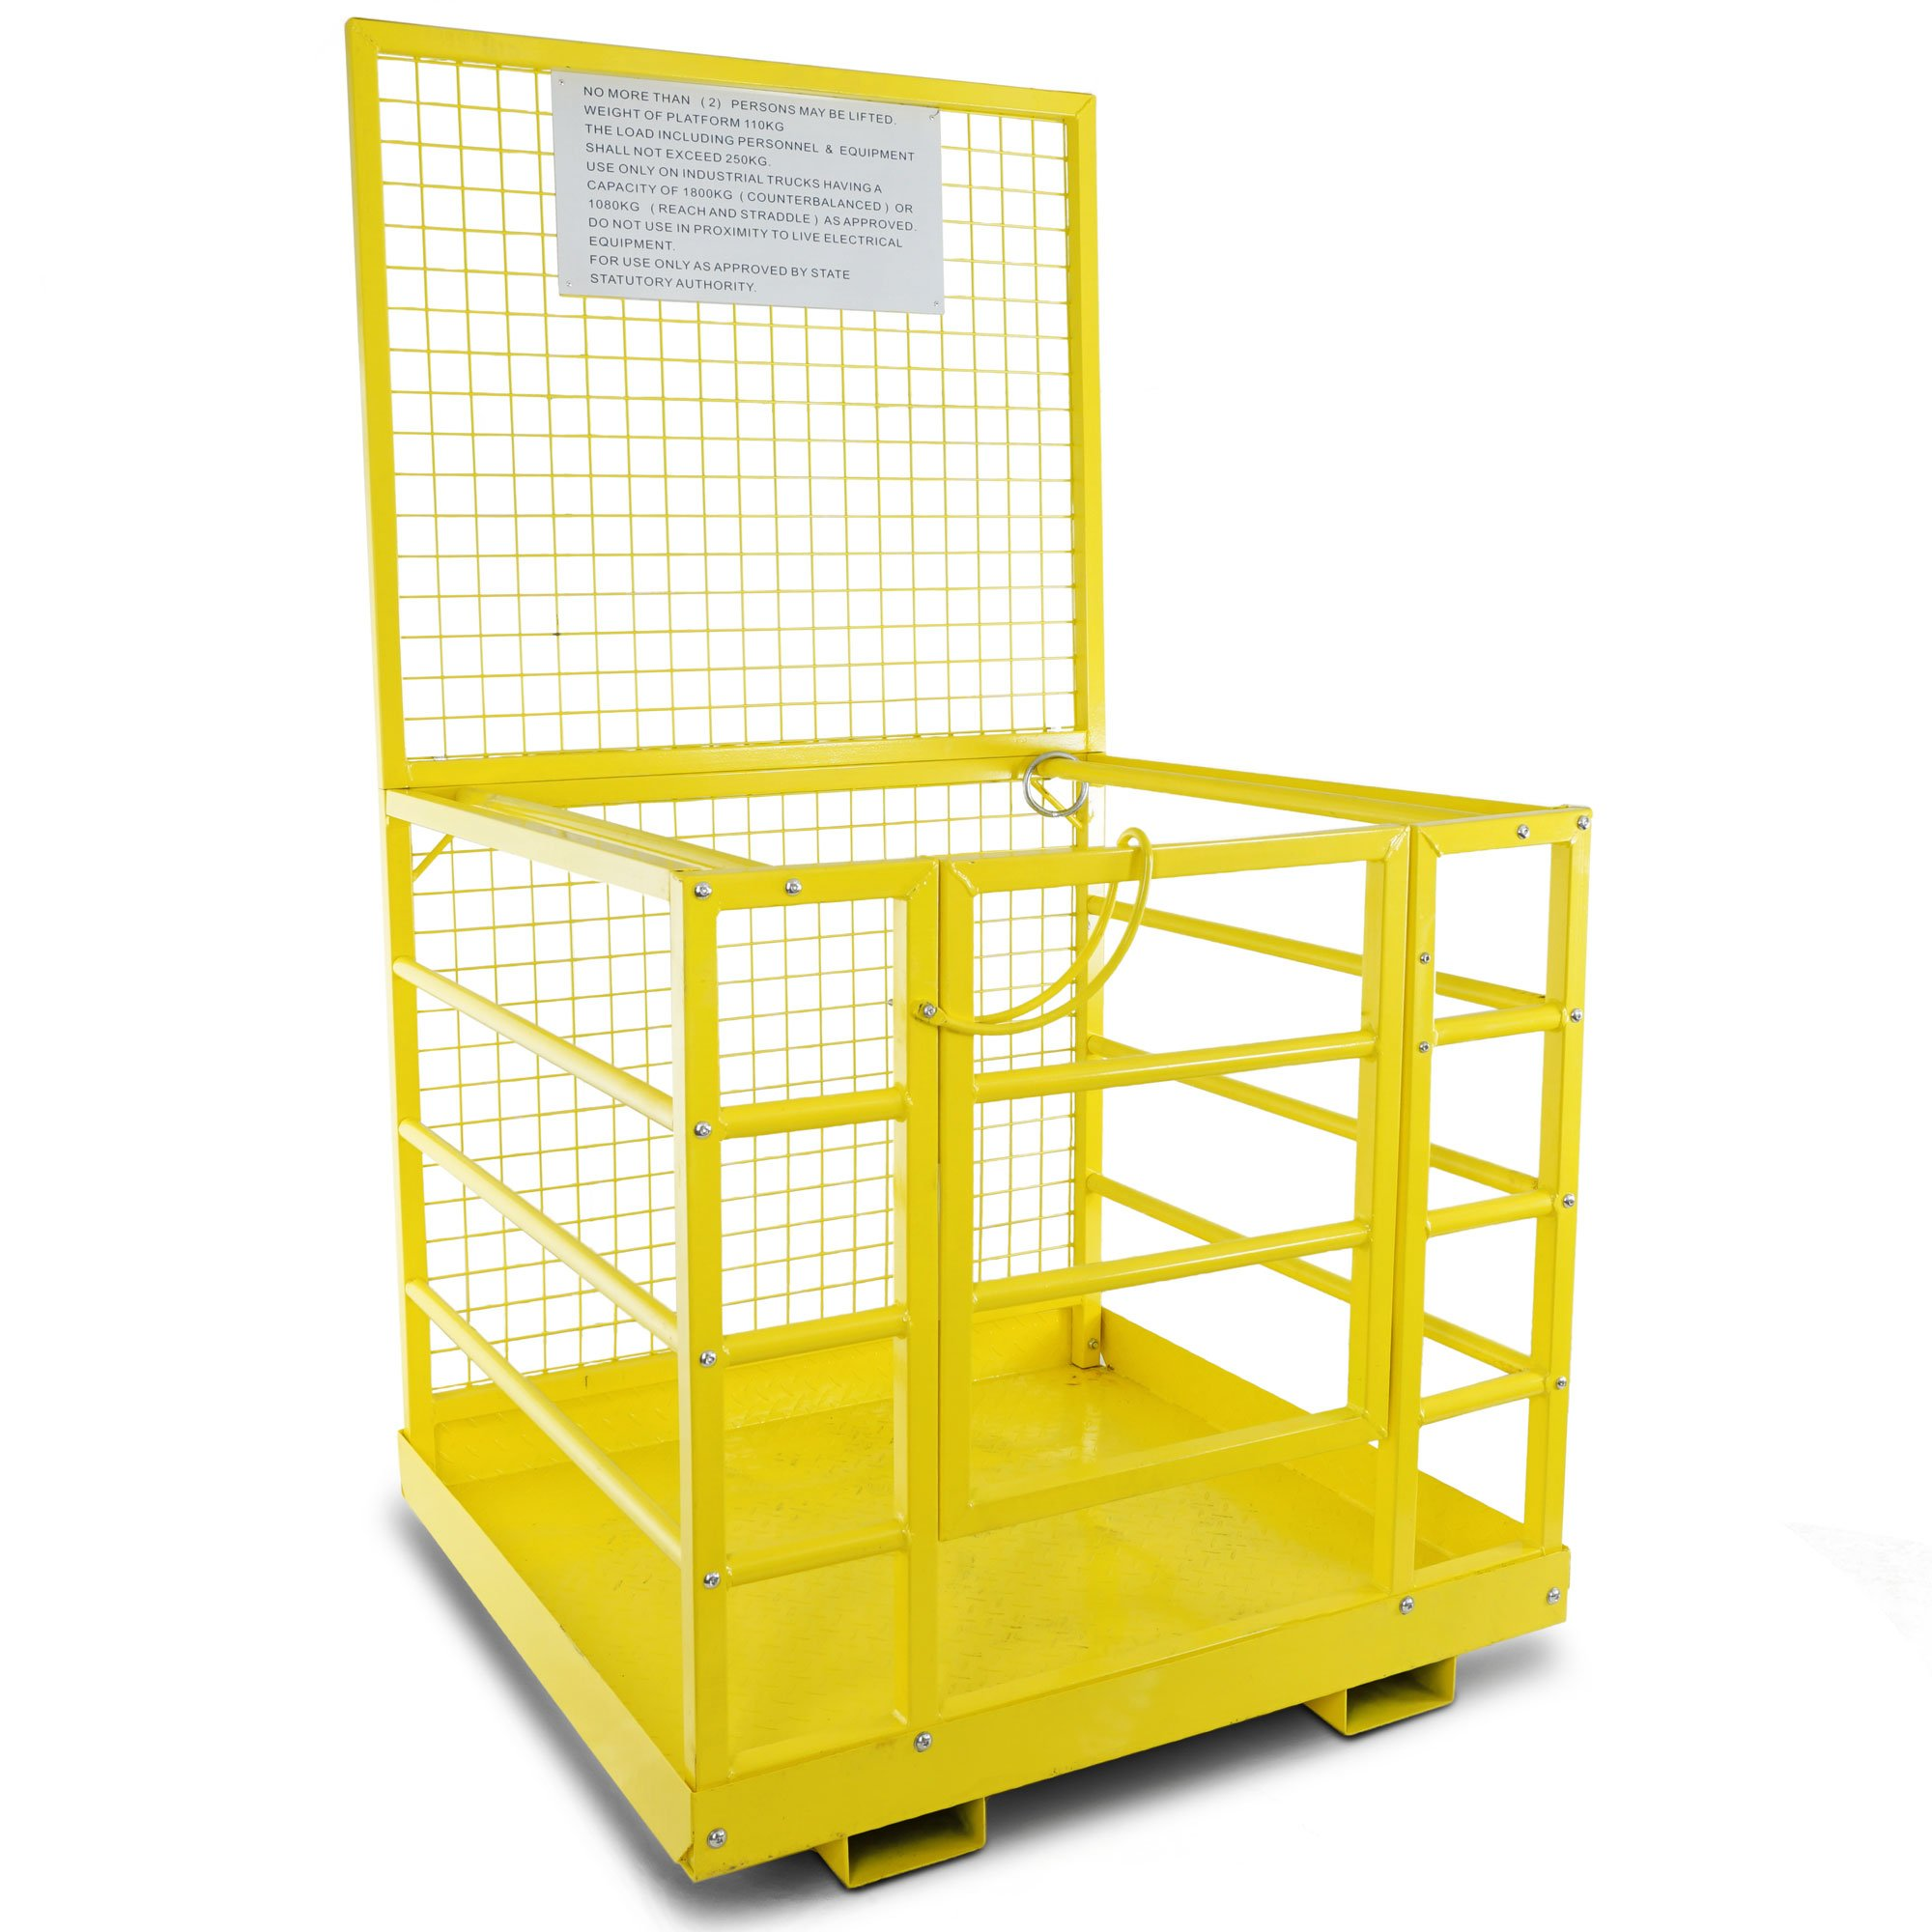 Forklift Safety Cage Work Platform Heavy Duty Basket Aerial Fence Rails 45''x43''